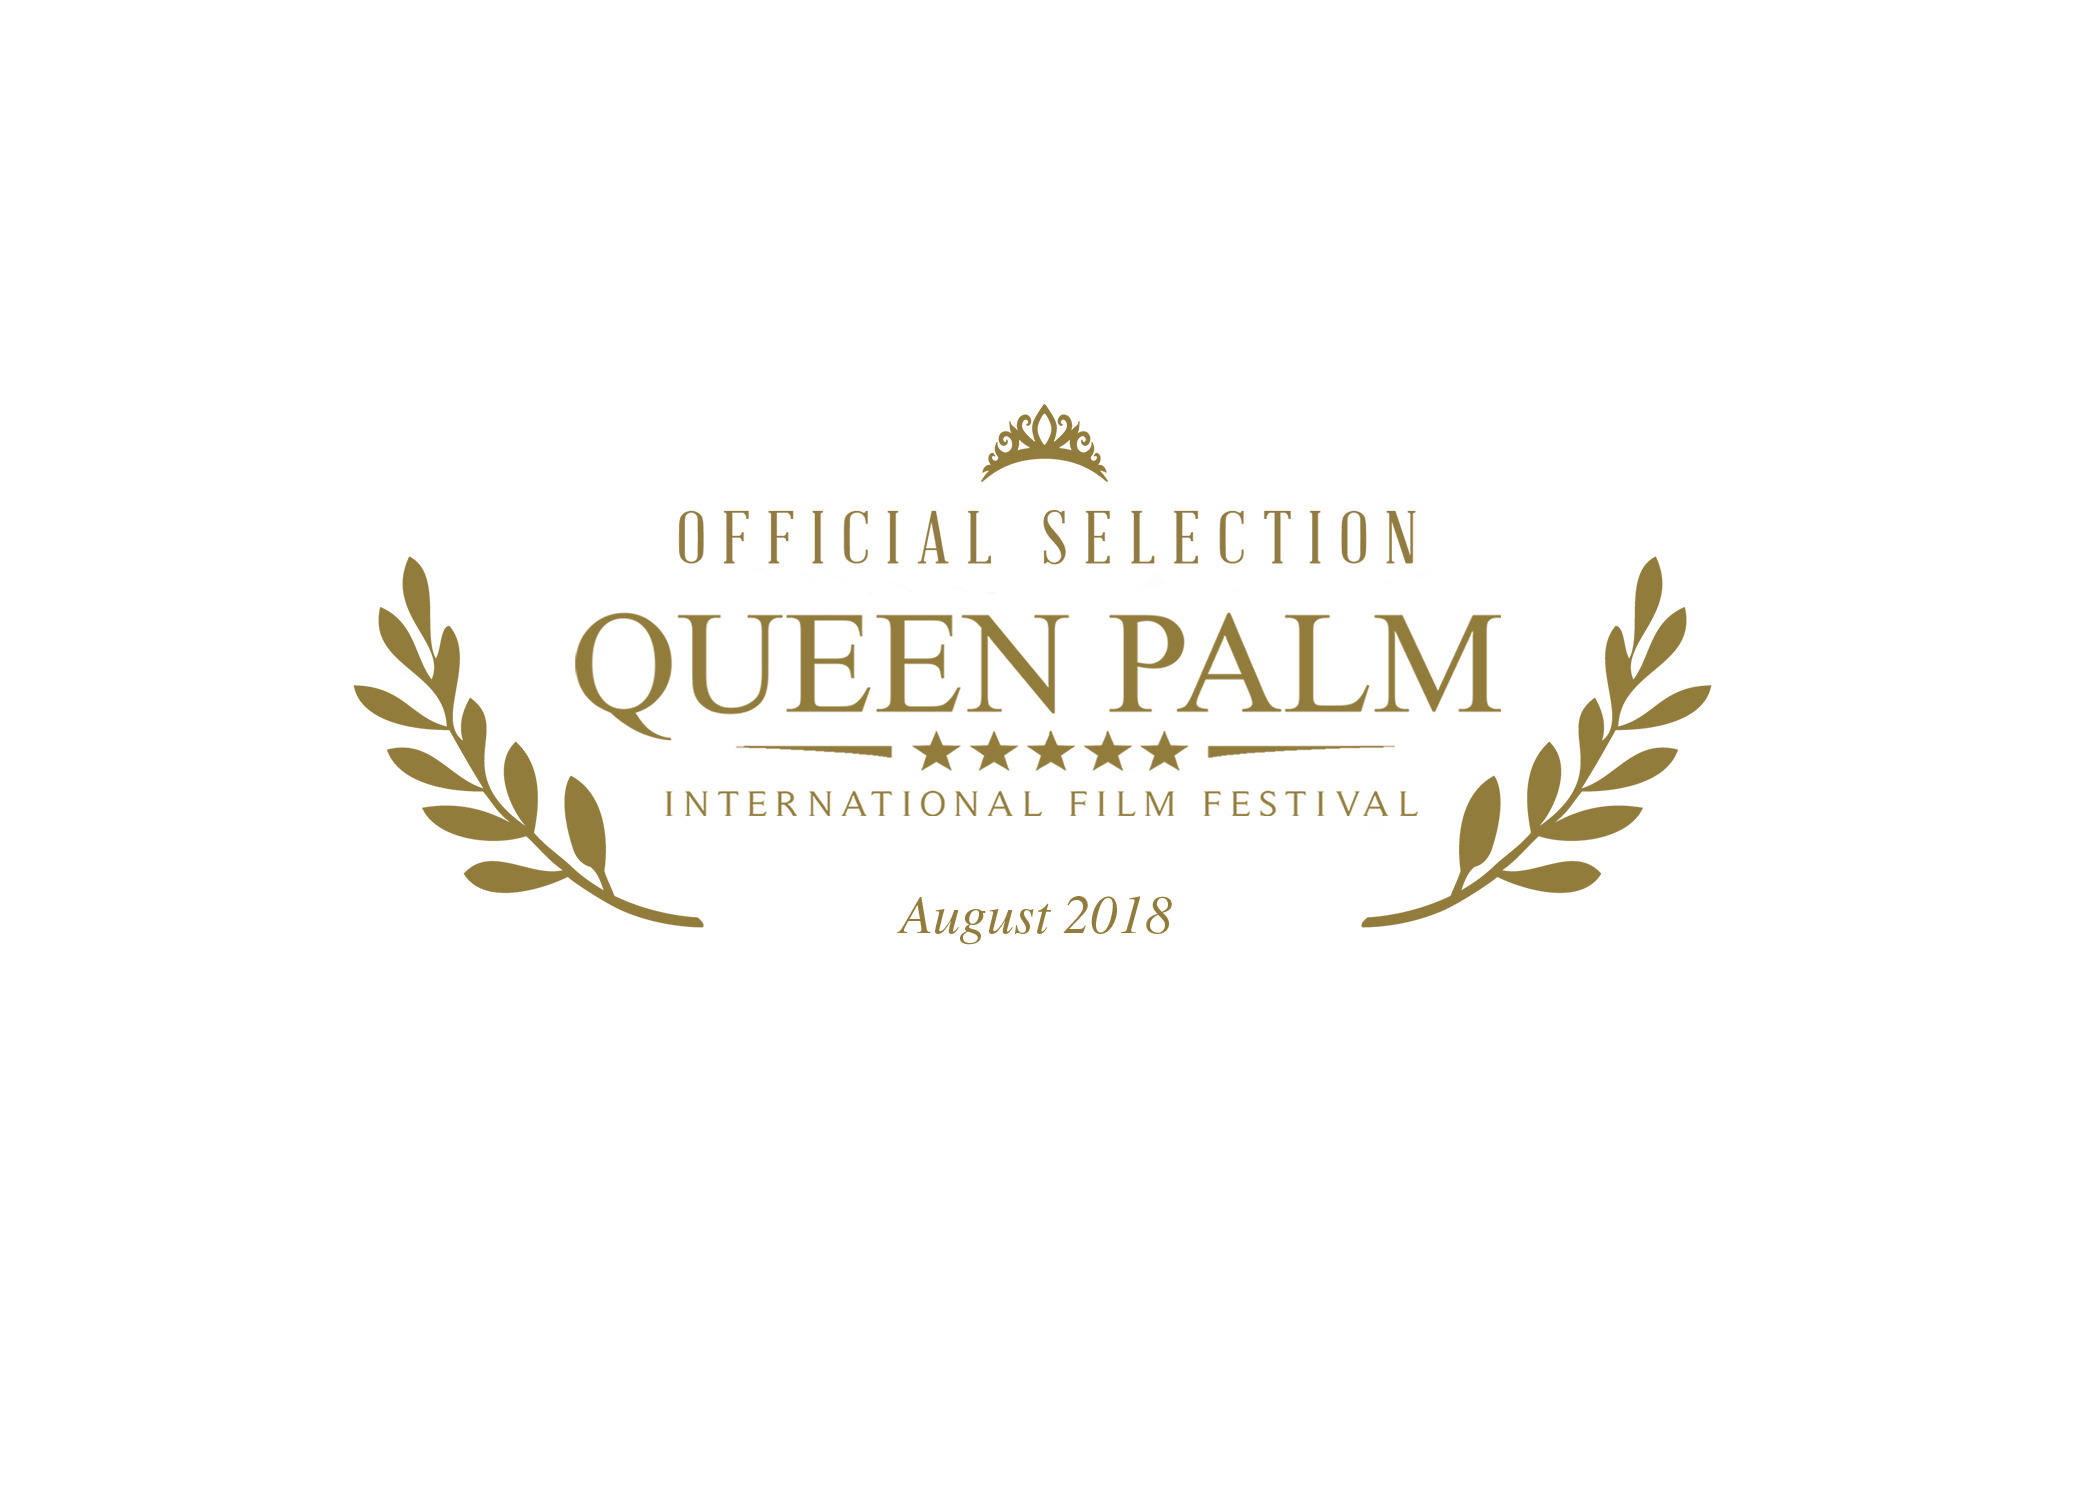 QPIFF Official Selection Coronet Laurel